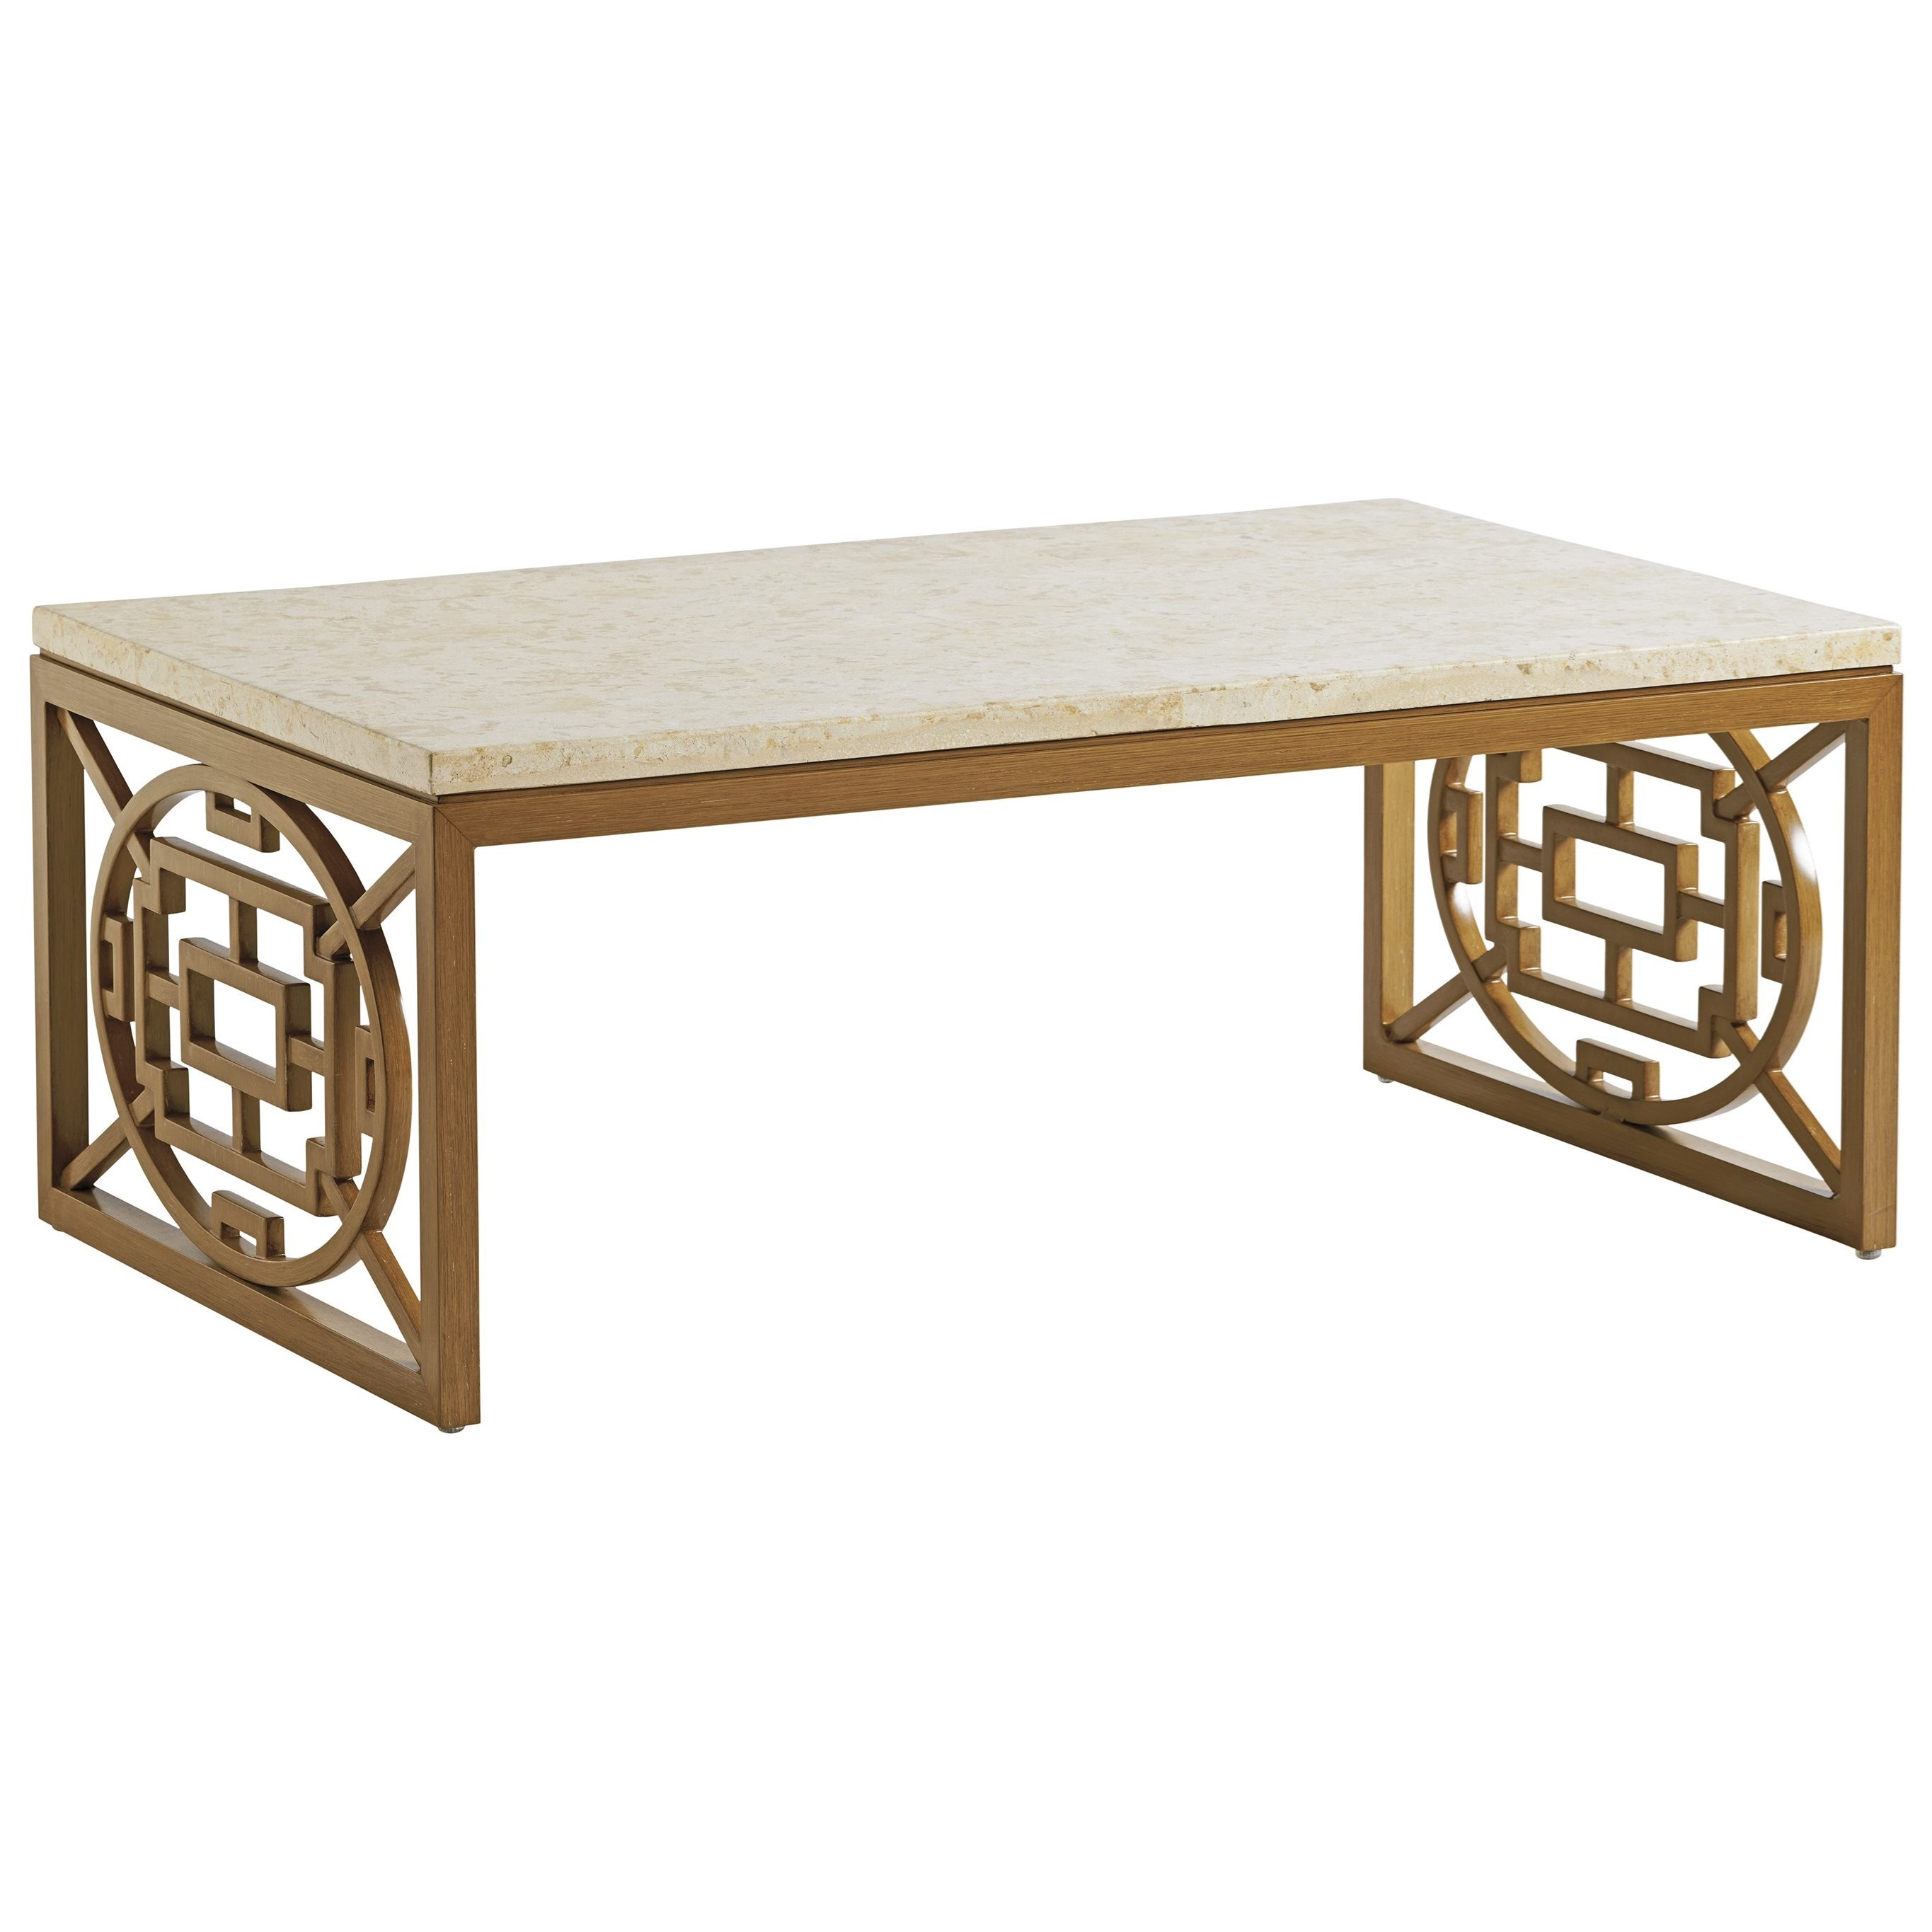 Los Altos Valley View Rectangular Cocktail Table by Tommy Bahama Outdoor Living at Baer's Furniture